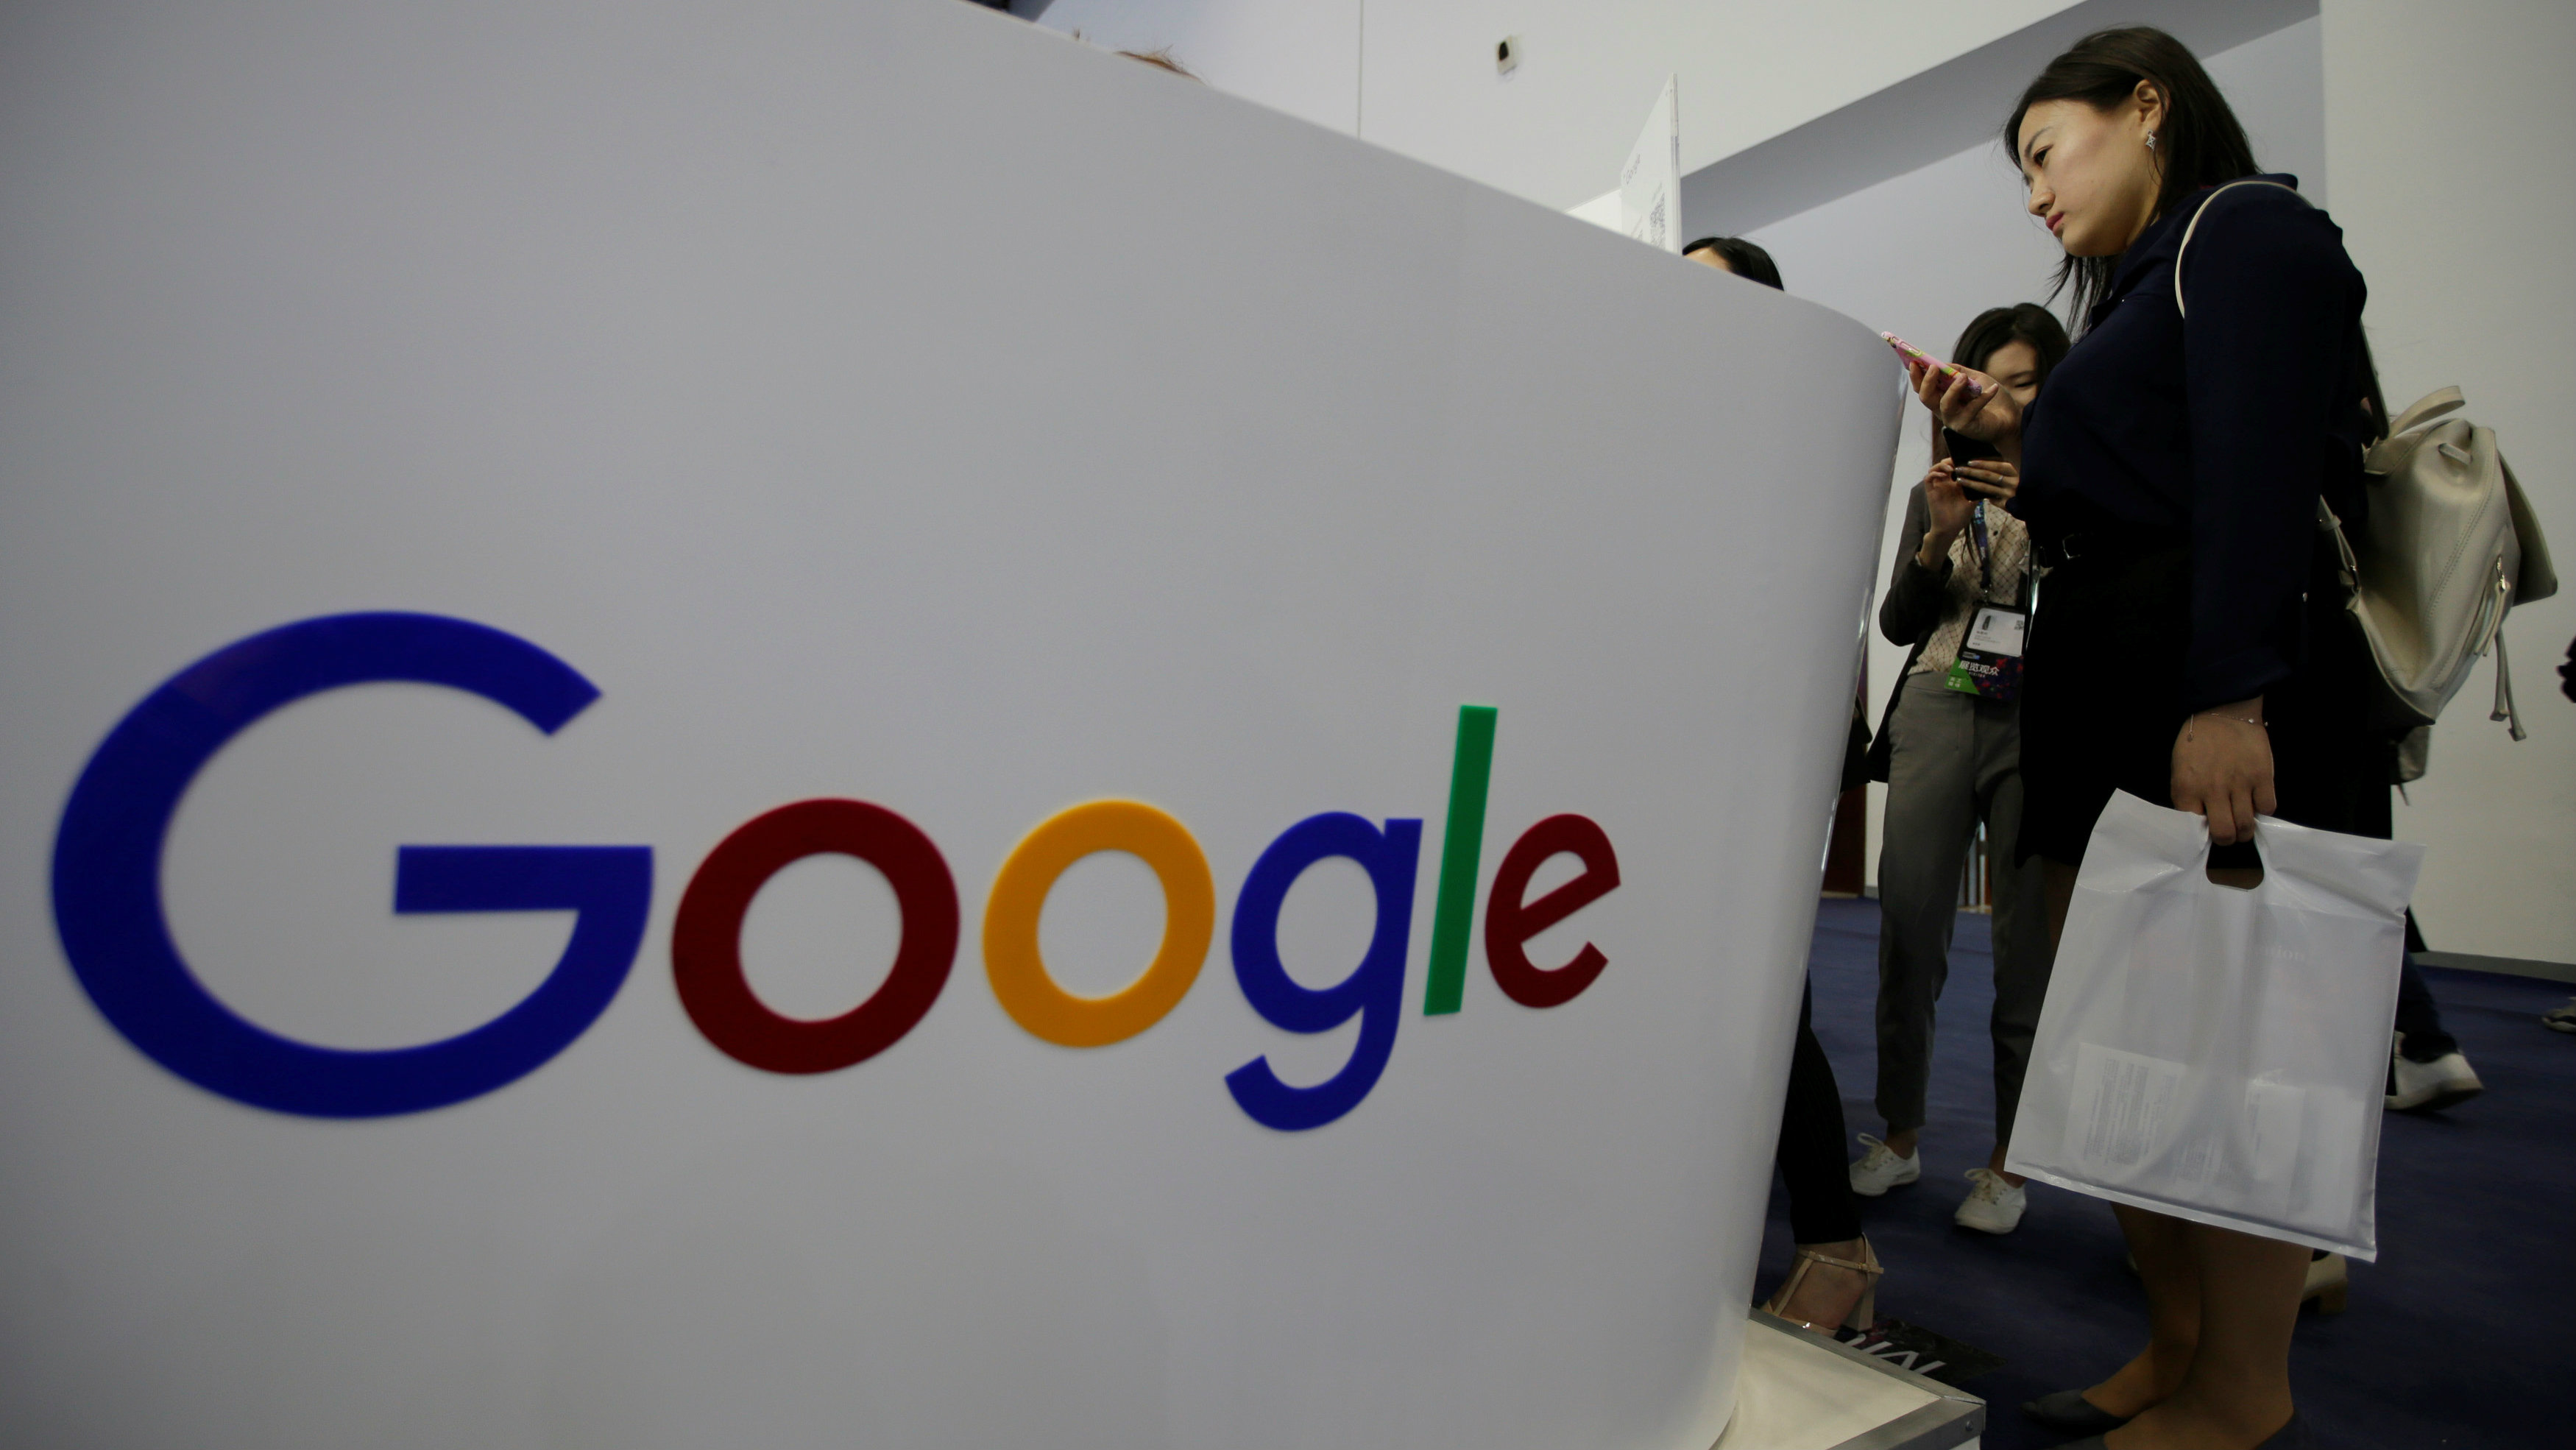 People visit Google's booth at the Global Mobile Internet Conference (GMIC) 2017 in Beijing